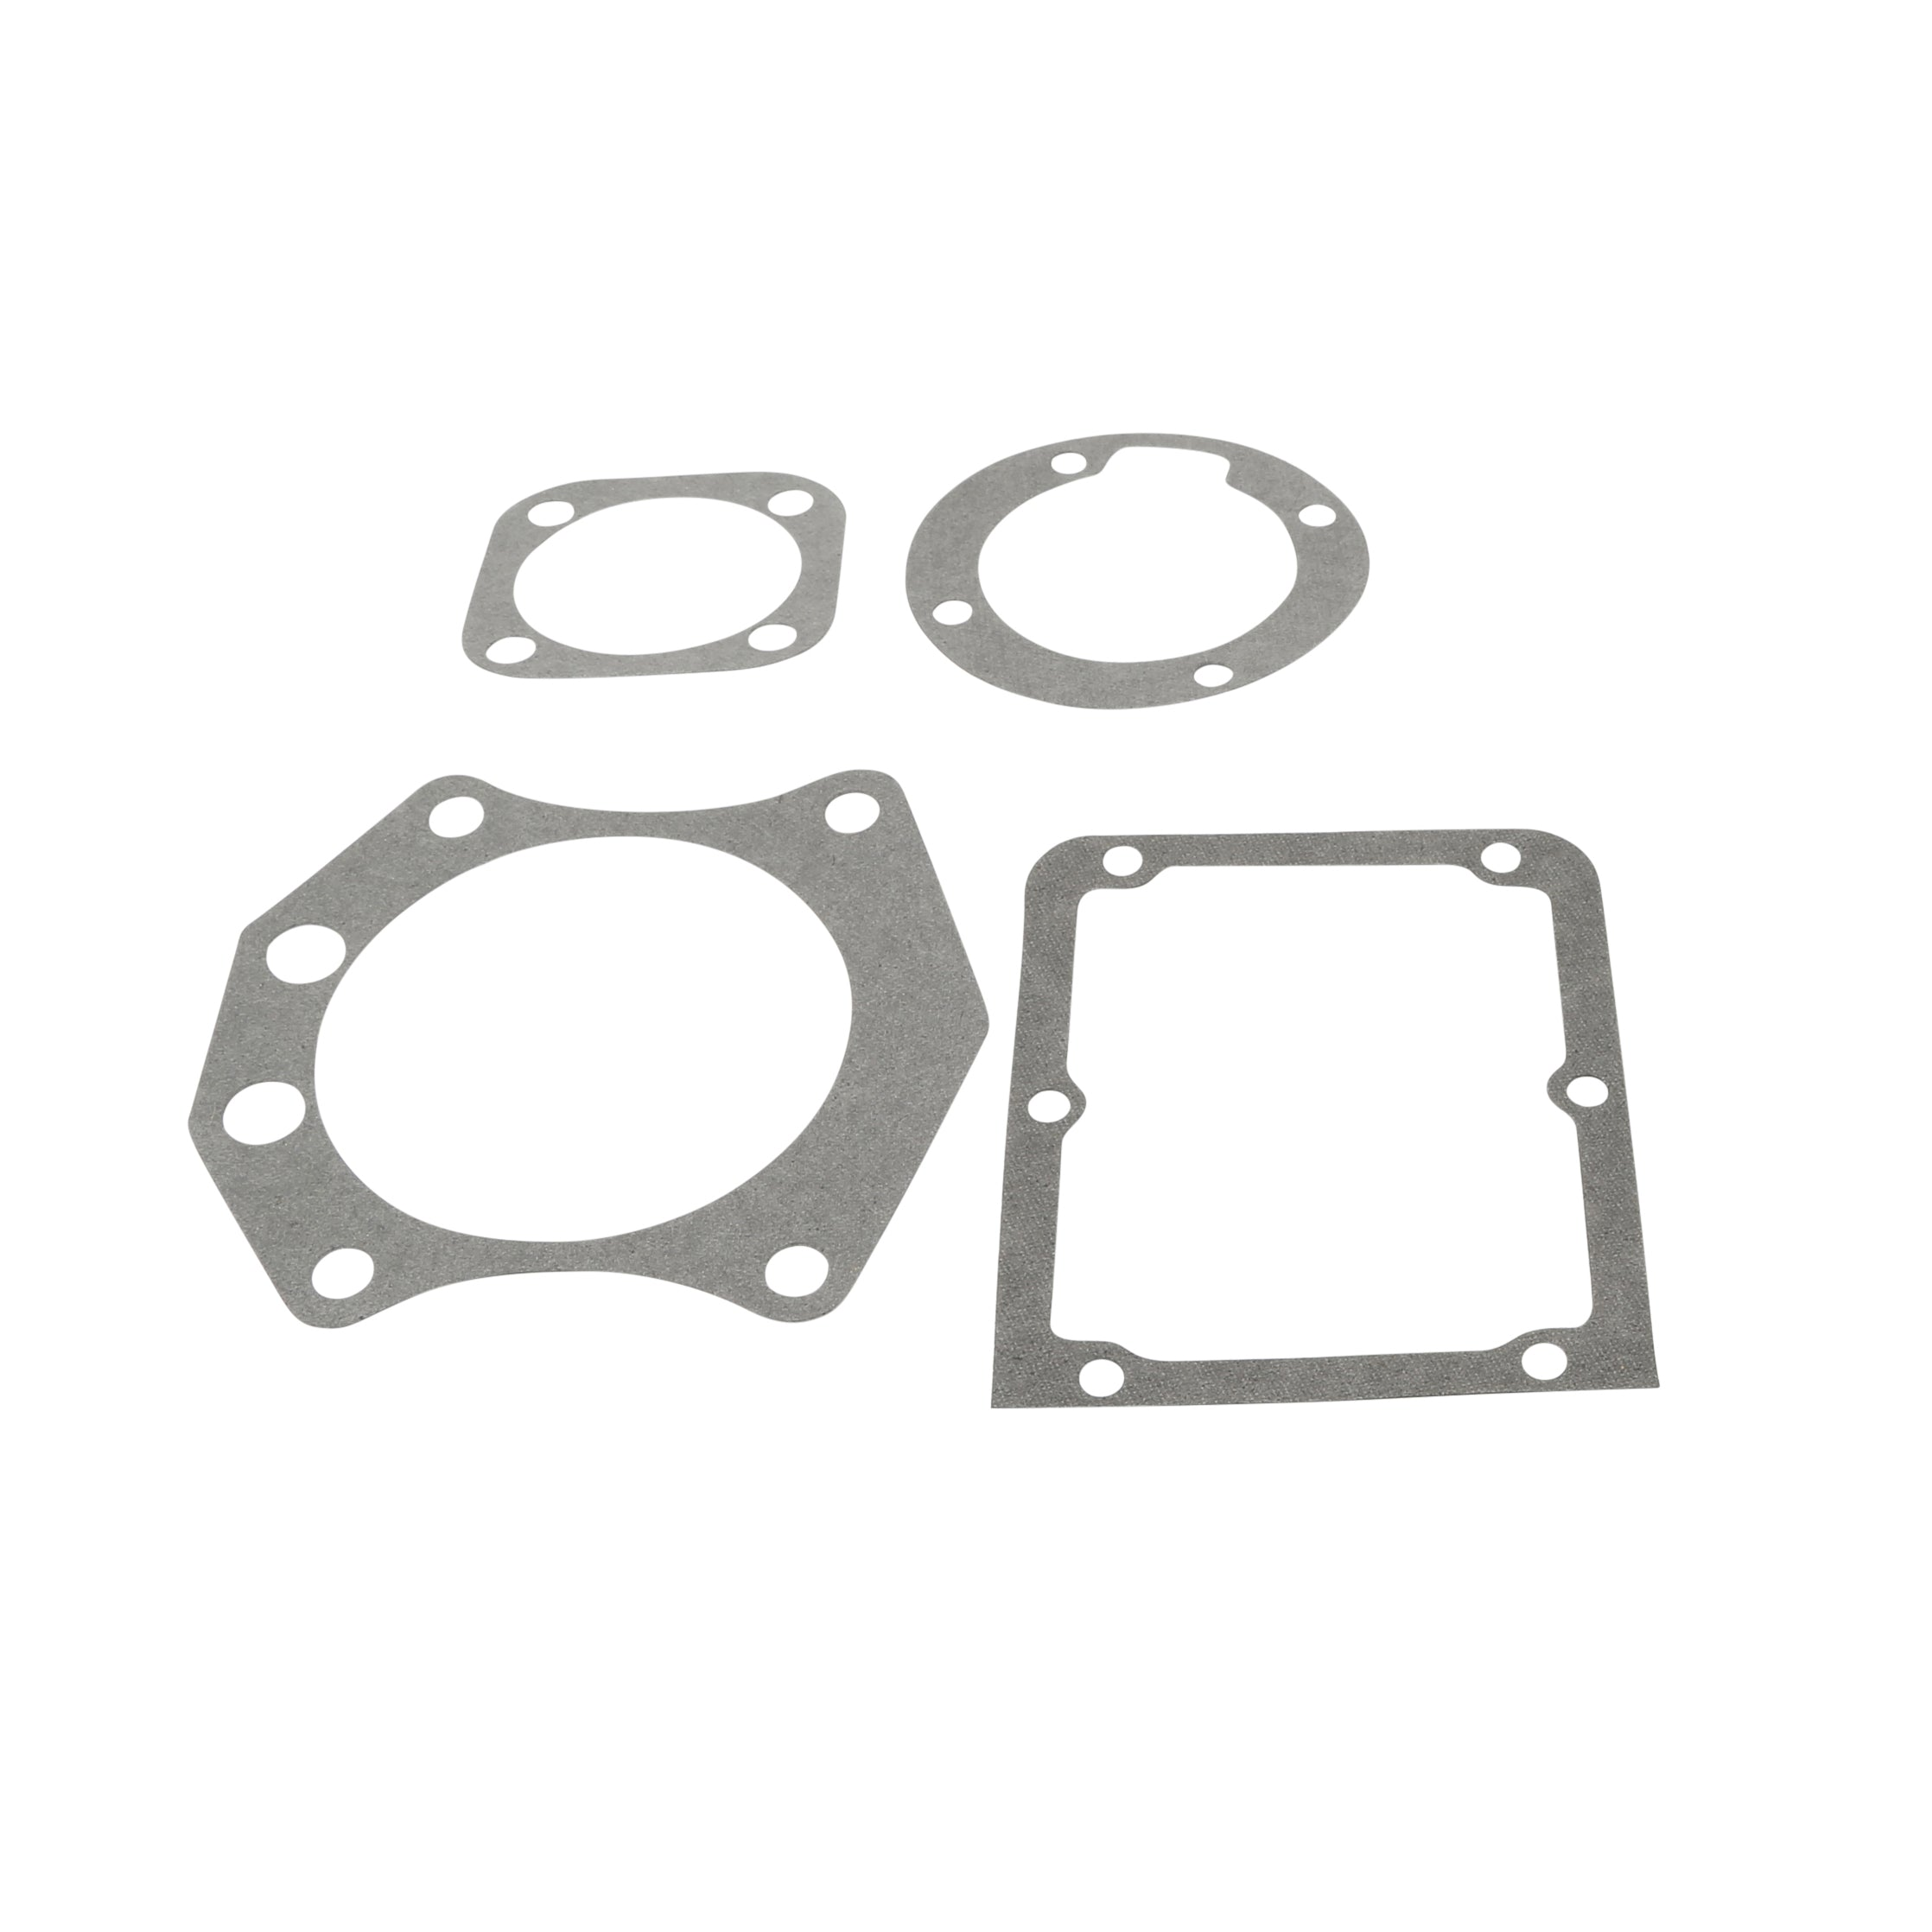 Transmission Gasket Set • 1928-31 Model A Ford